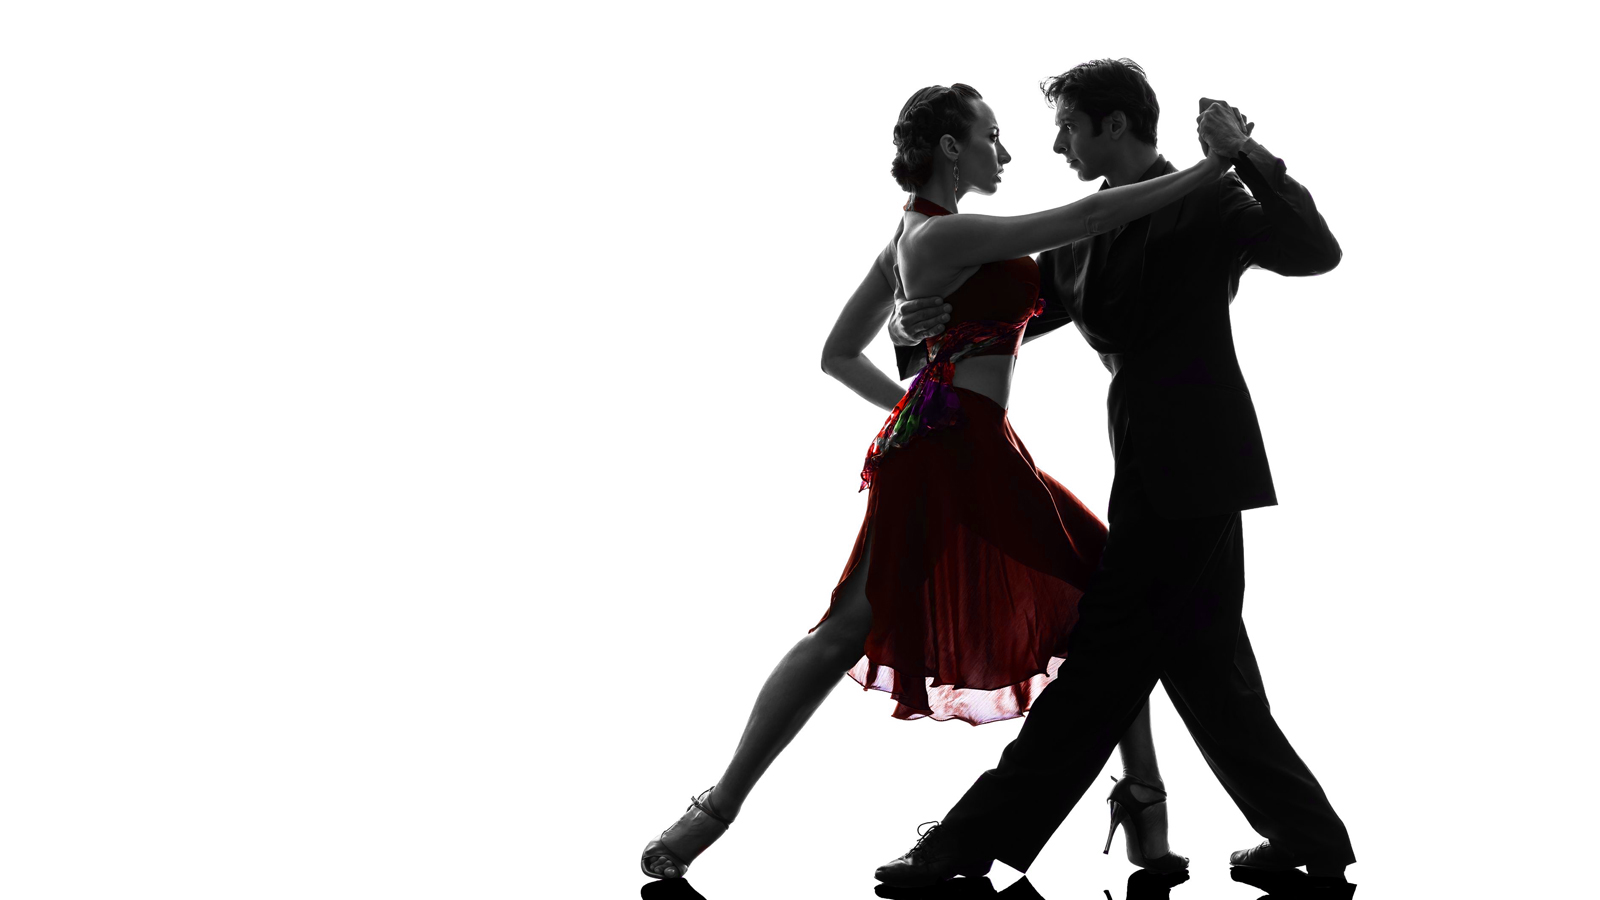 Dance Competition - Showcase Your Skills With Latin Dance Form